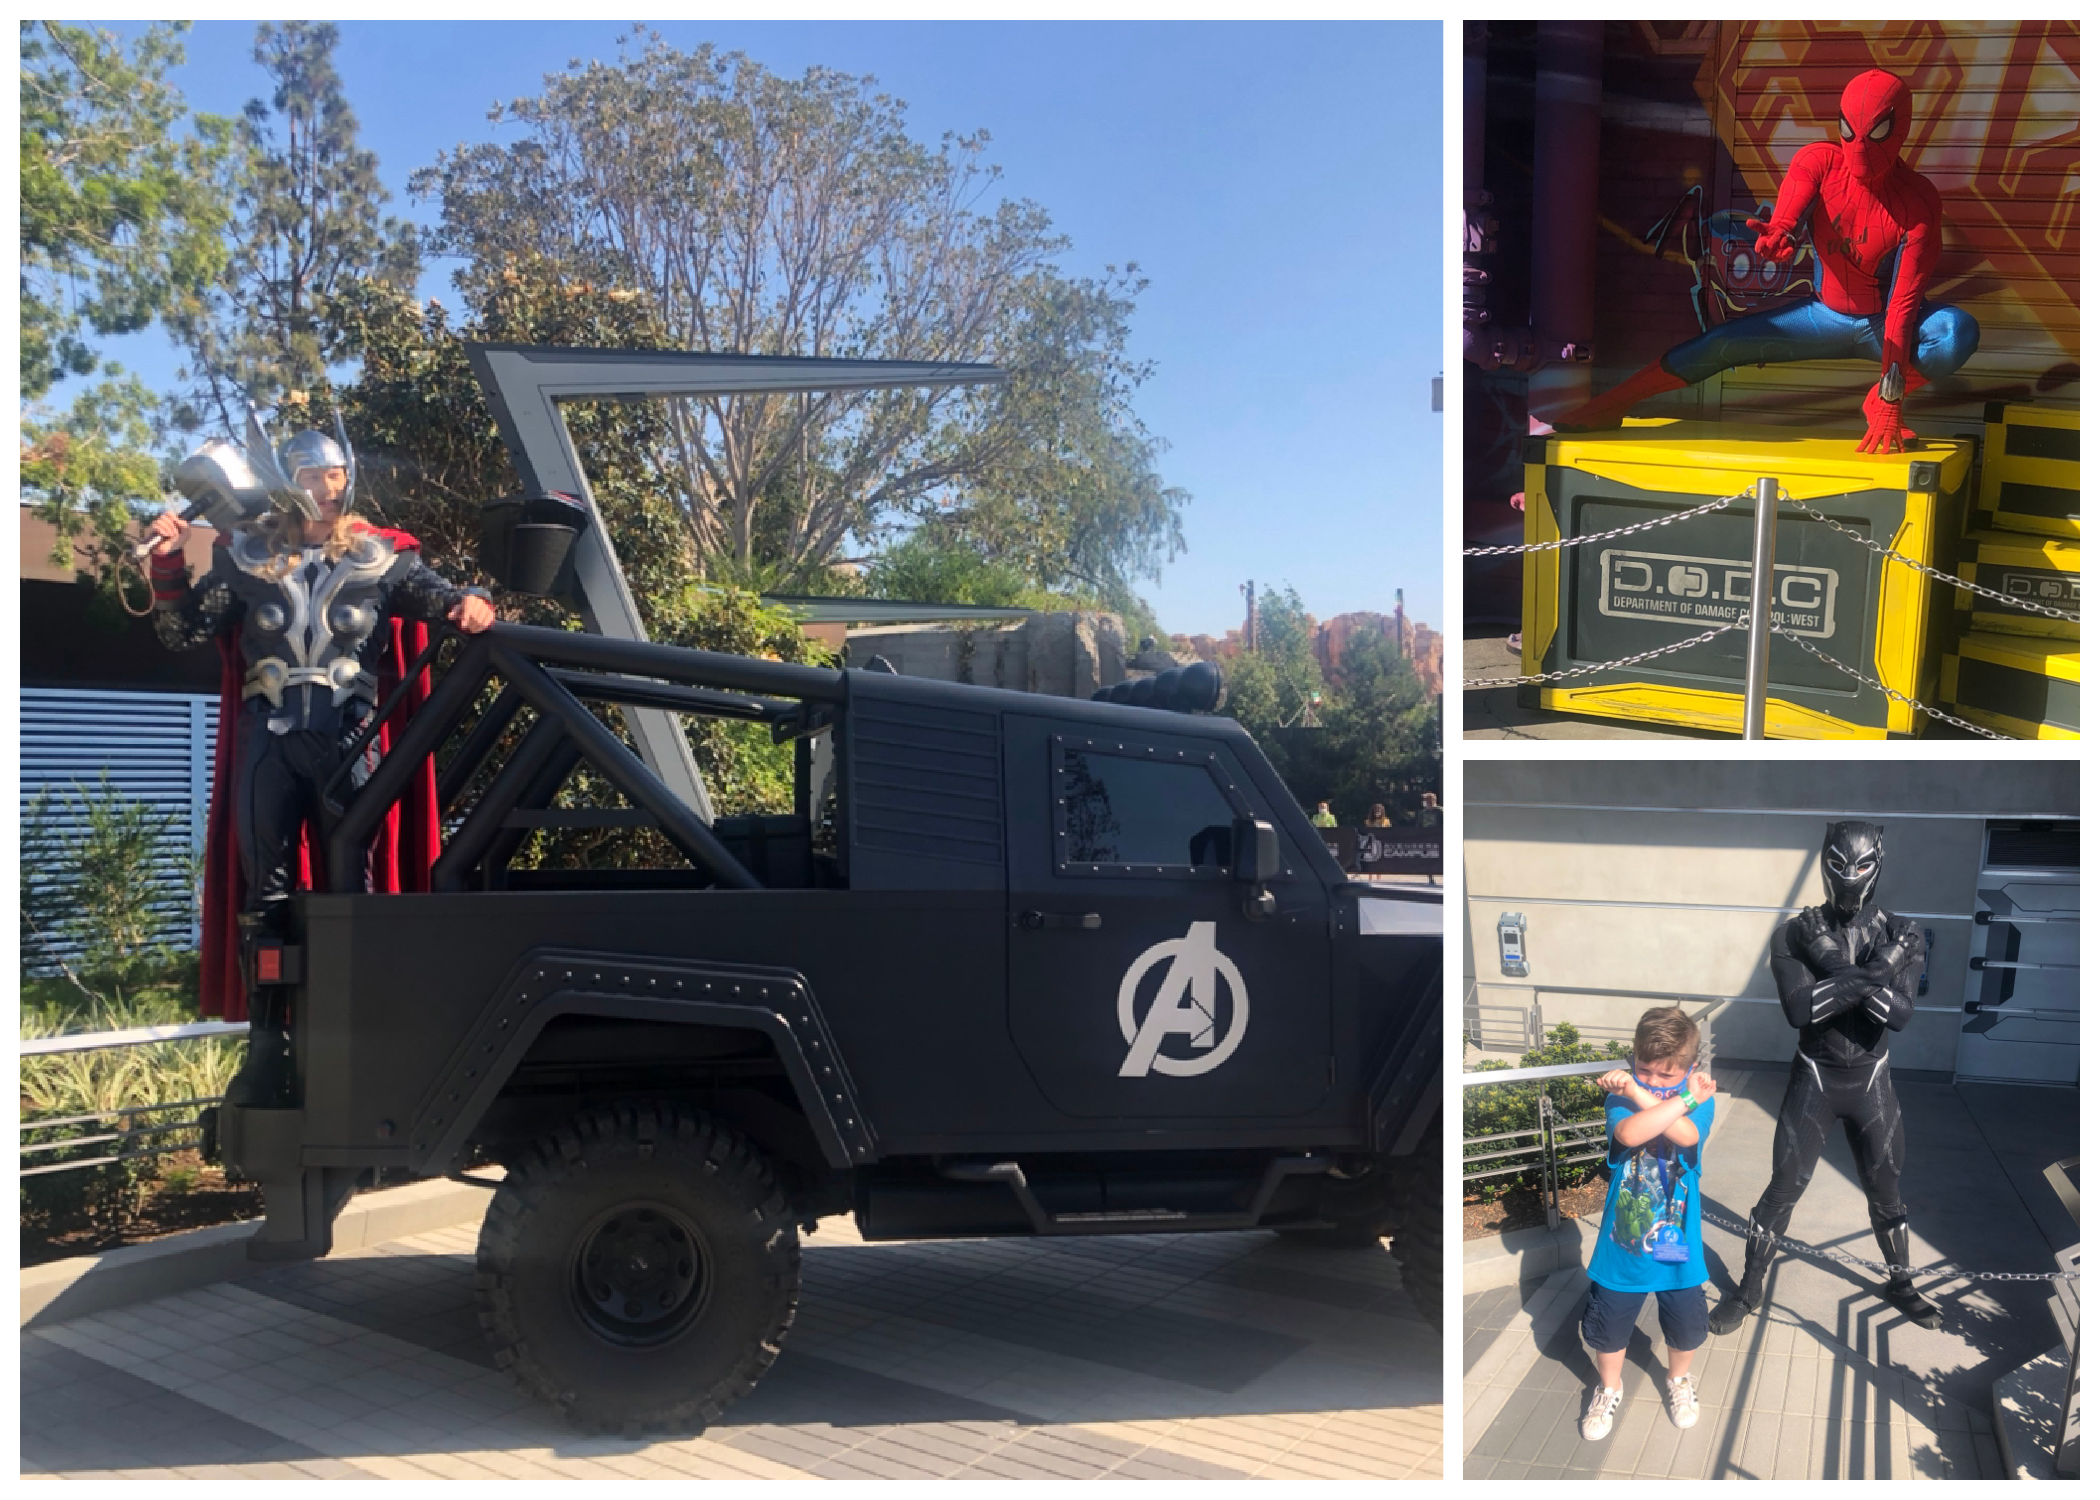 Thor holds his hammer on the avengers truck, spidey crouches, and James crosses his arms with Black Panther